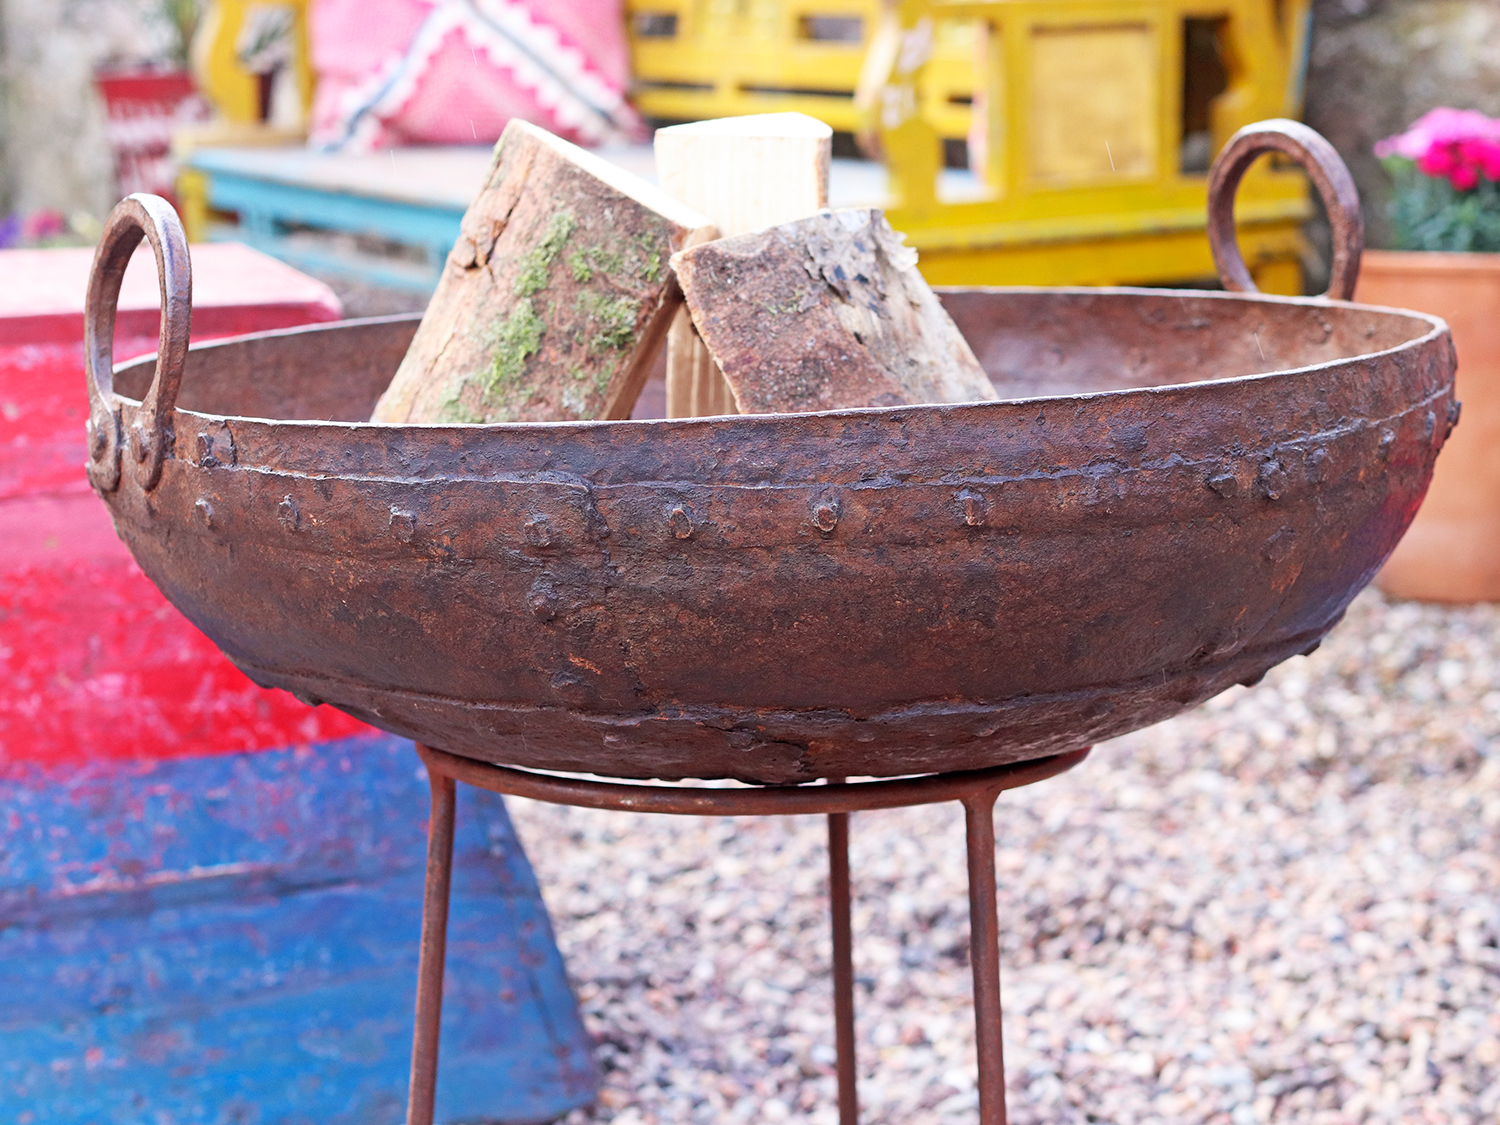 We all need a source of warmth when outside. Our range of Kadai fire bowls are the solution